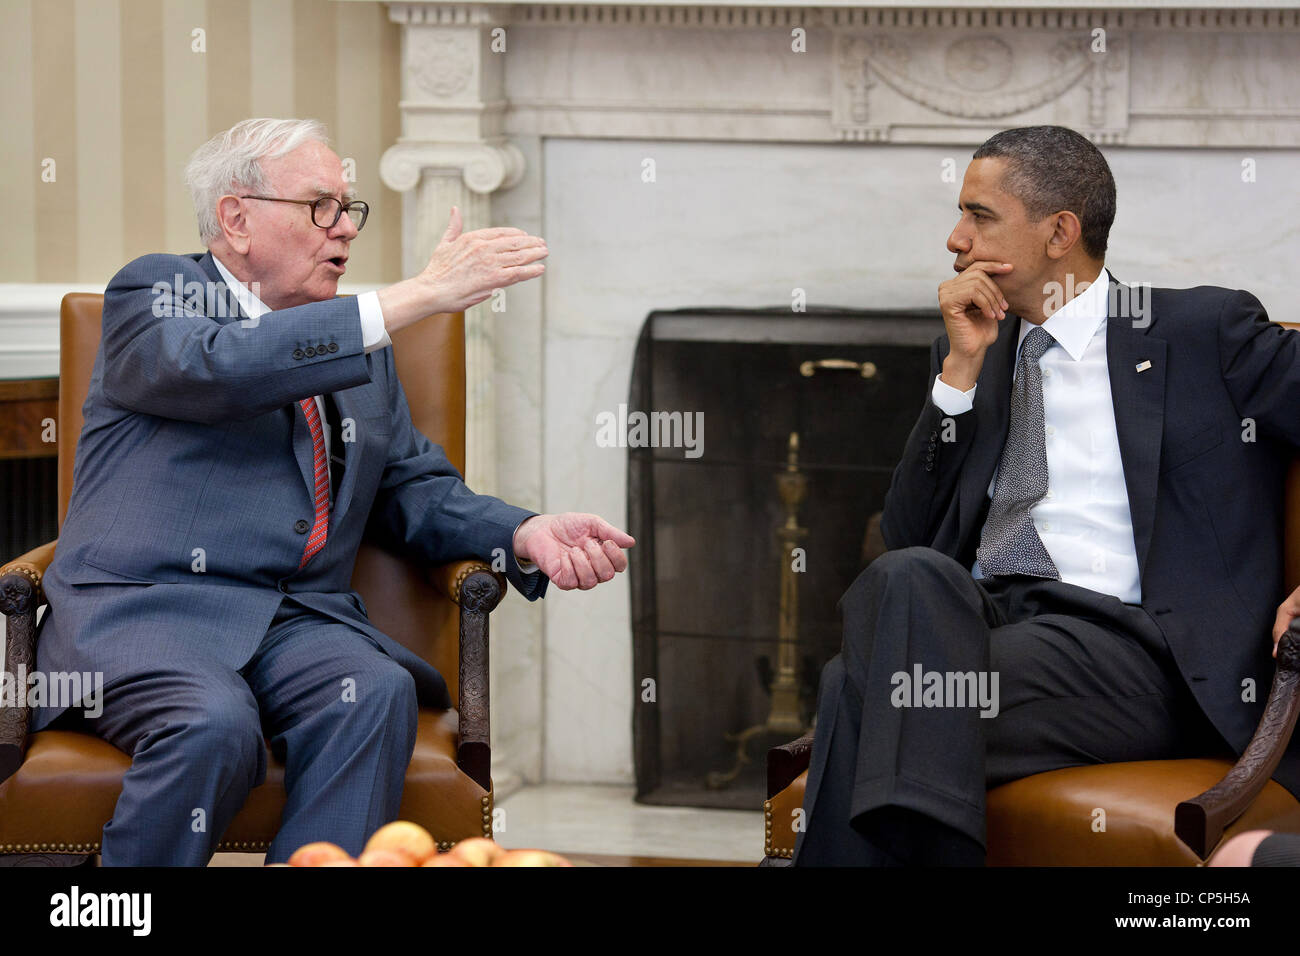 President Barack Obama meets with Warren Buffett, the Chairman of Berkshire Hathaway, in the Oval Office, July 18, - Stock Image